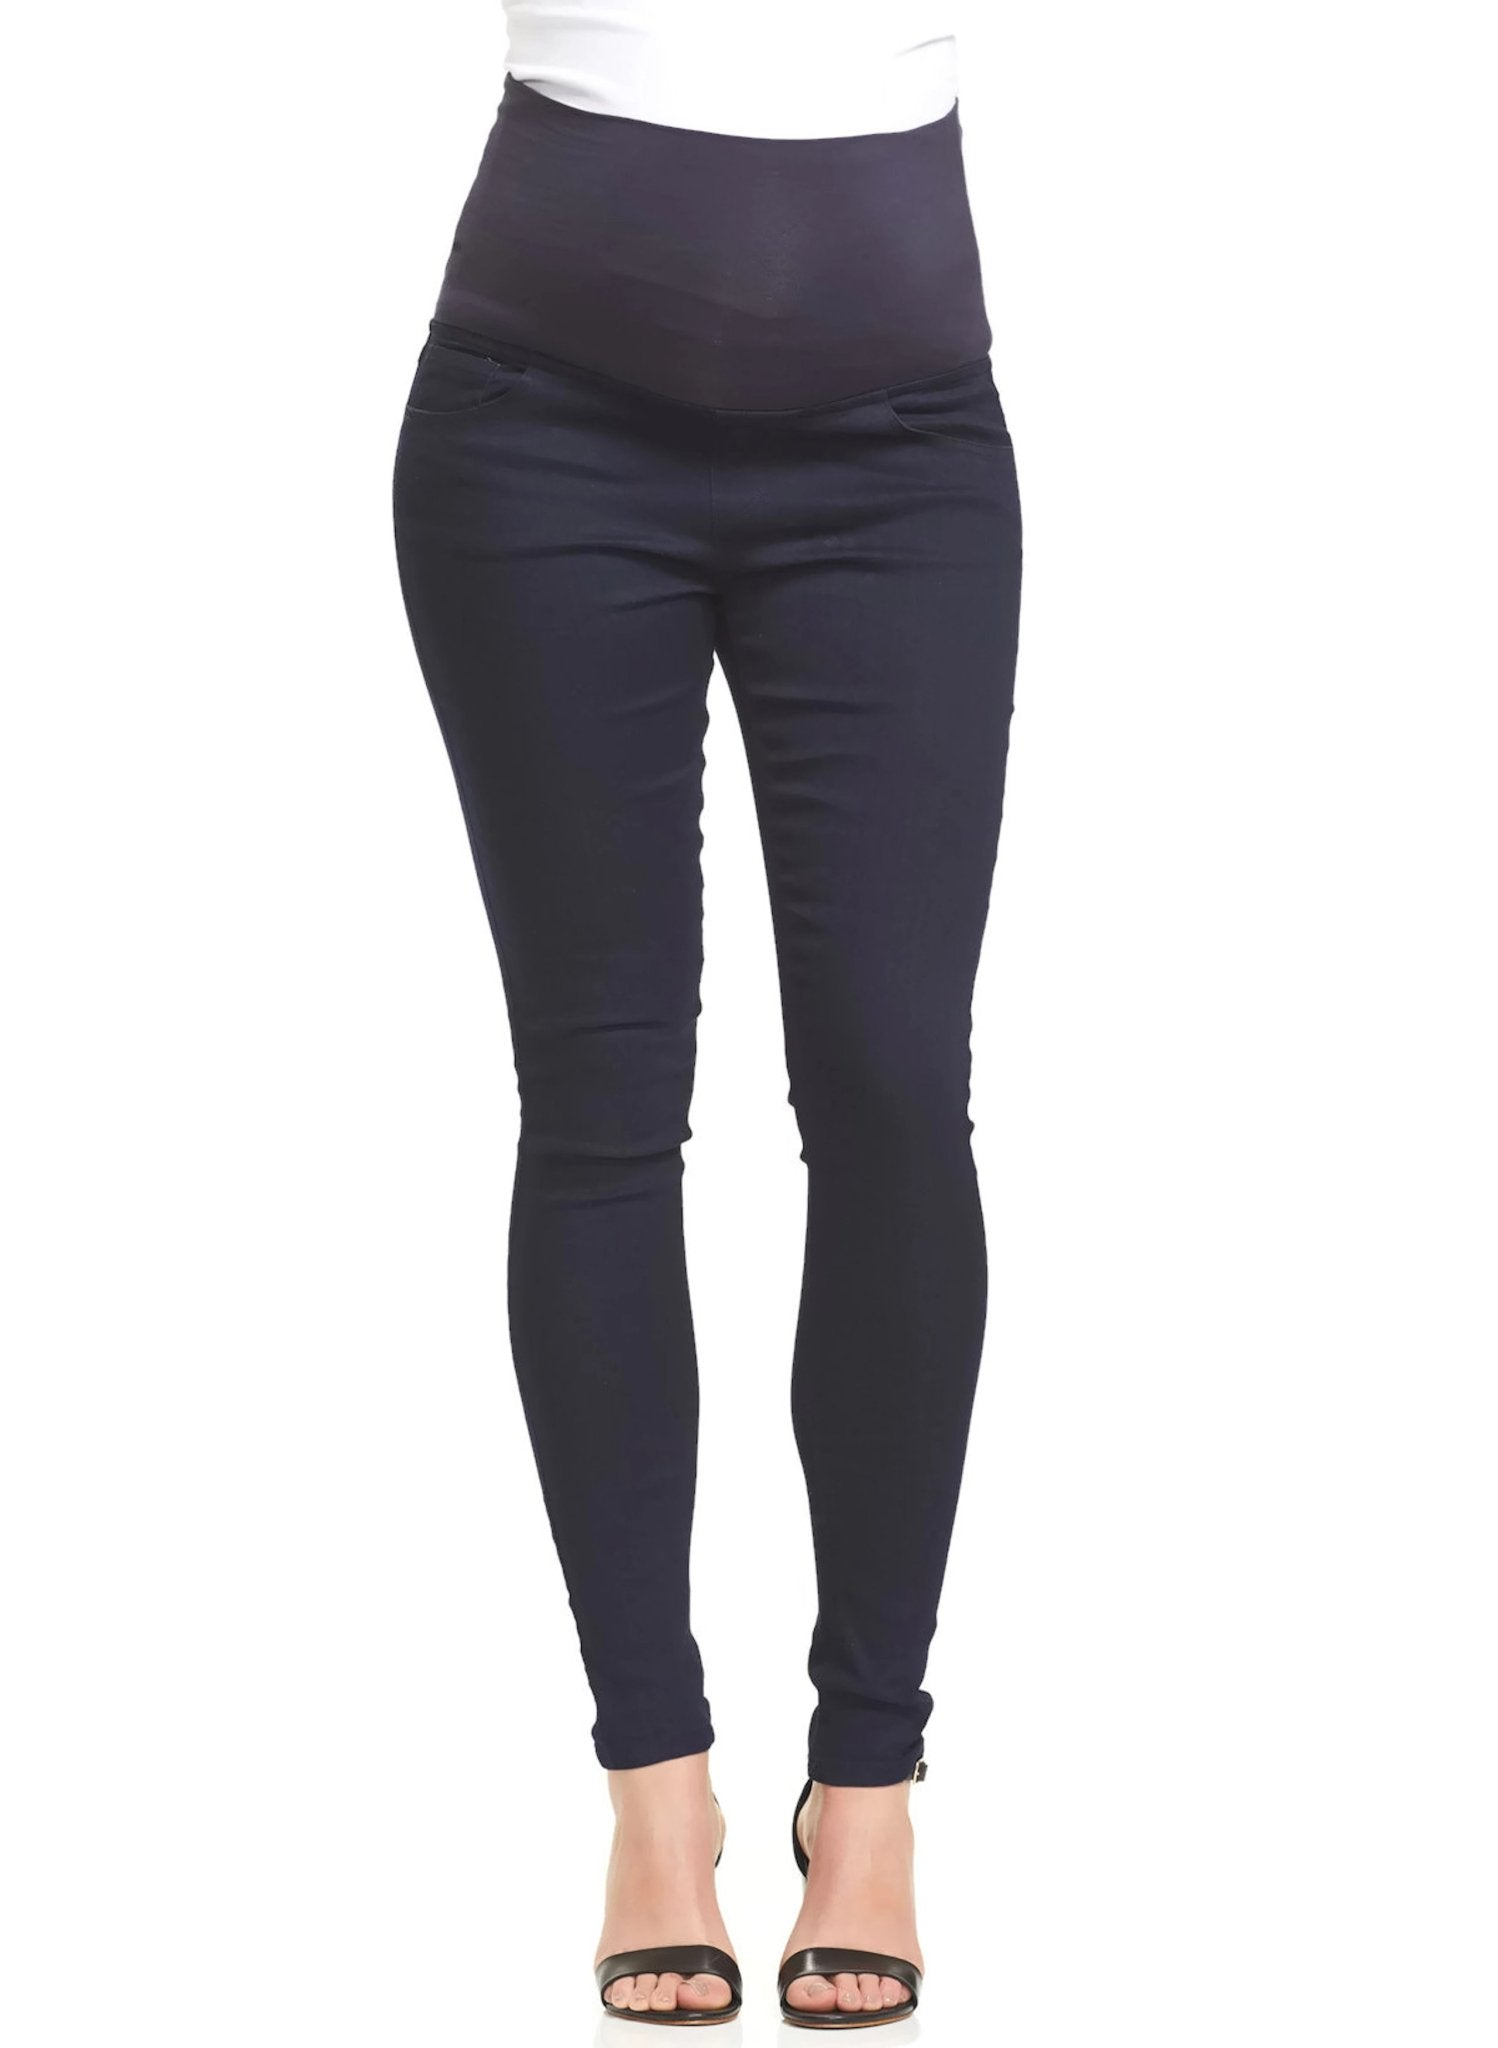 Essential Overbelly Maternity Denim - Navy - Mums and Bumps